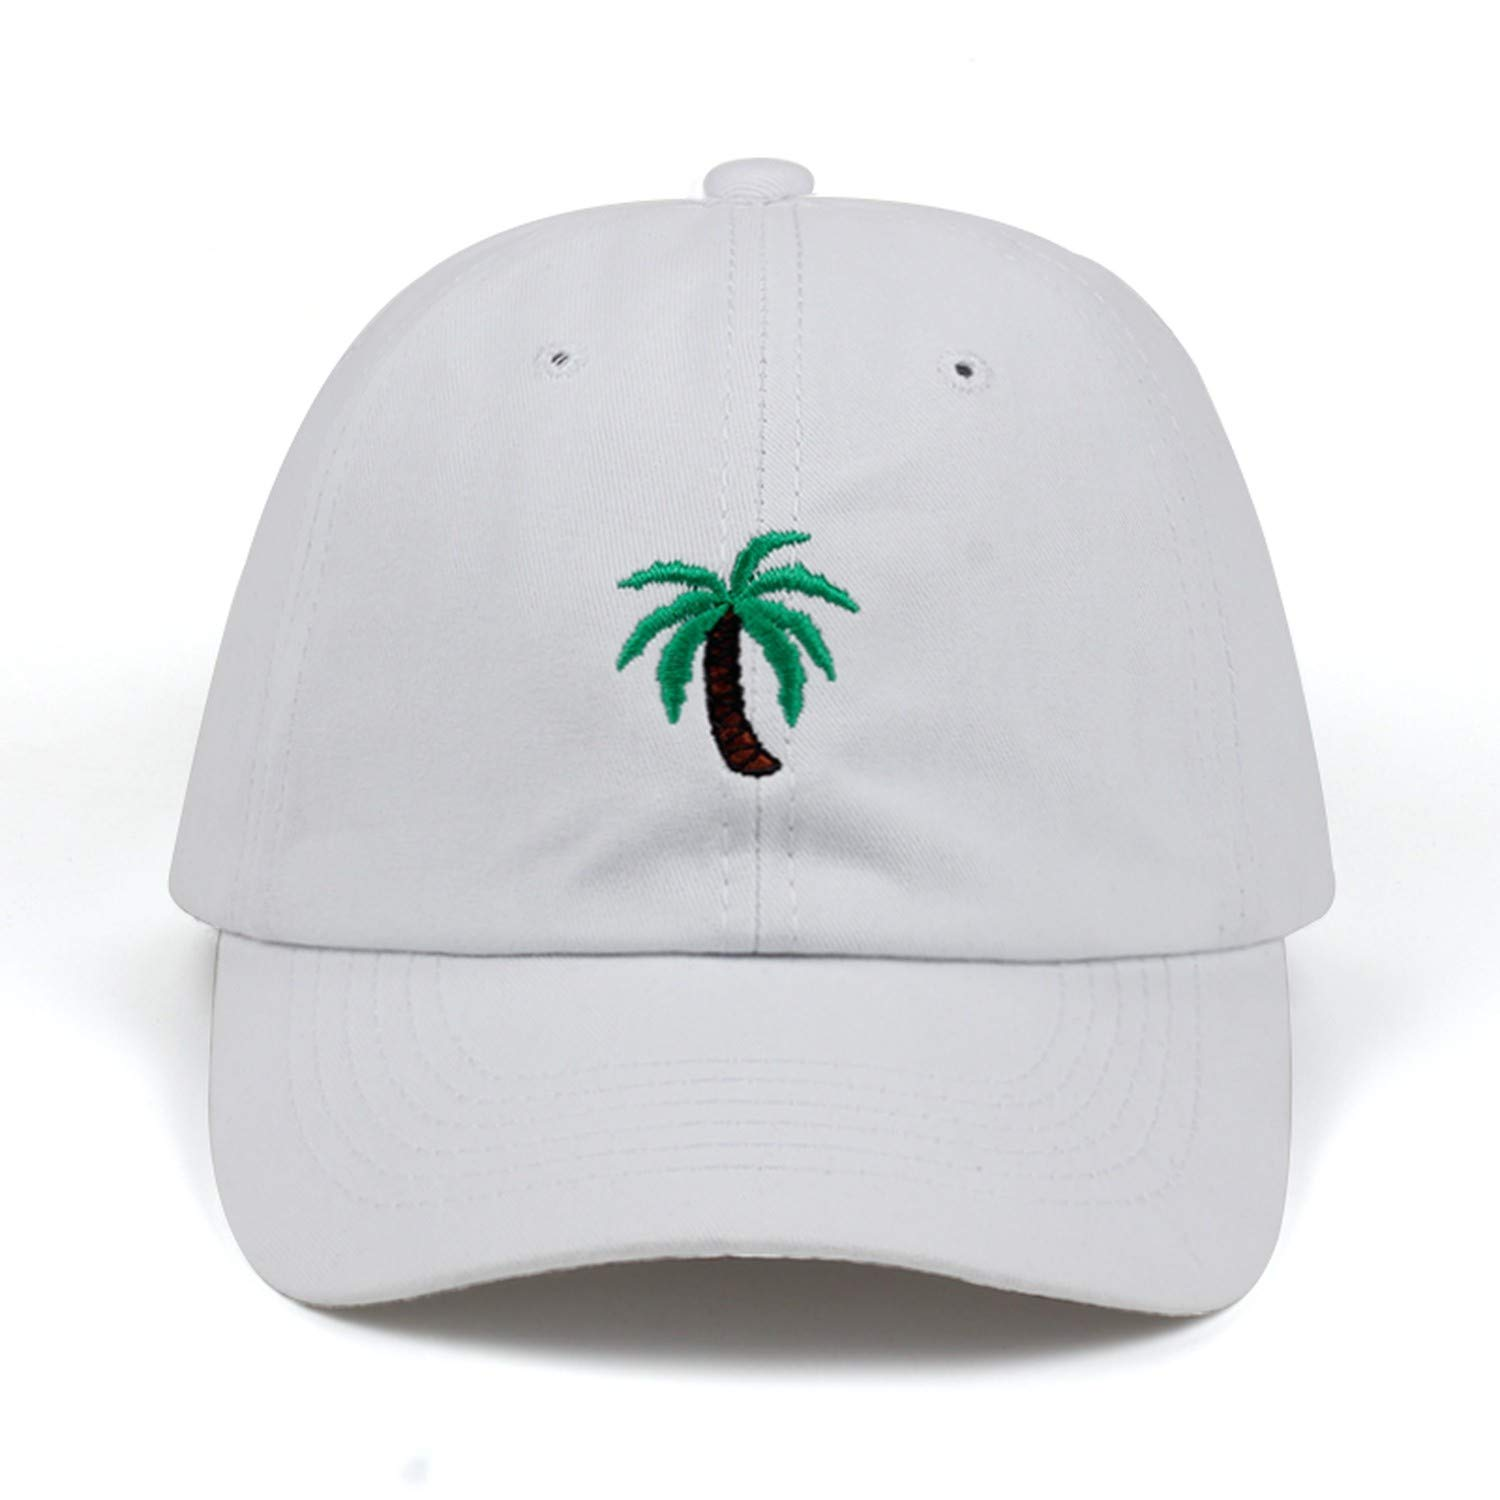 60d8c93b Amazon.com: Glad You Came New Embroidery Palm Trees Curved Dad Hats Take A Trip  Baseball Cap Coconut Trees Hat Strapback Hip Hop Cap Adjustable,Pink: ...